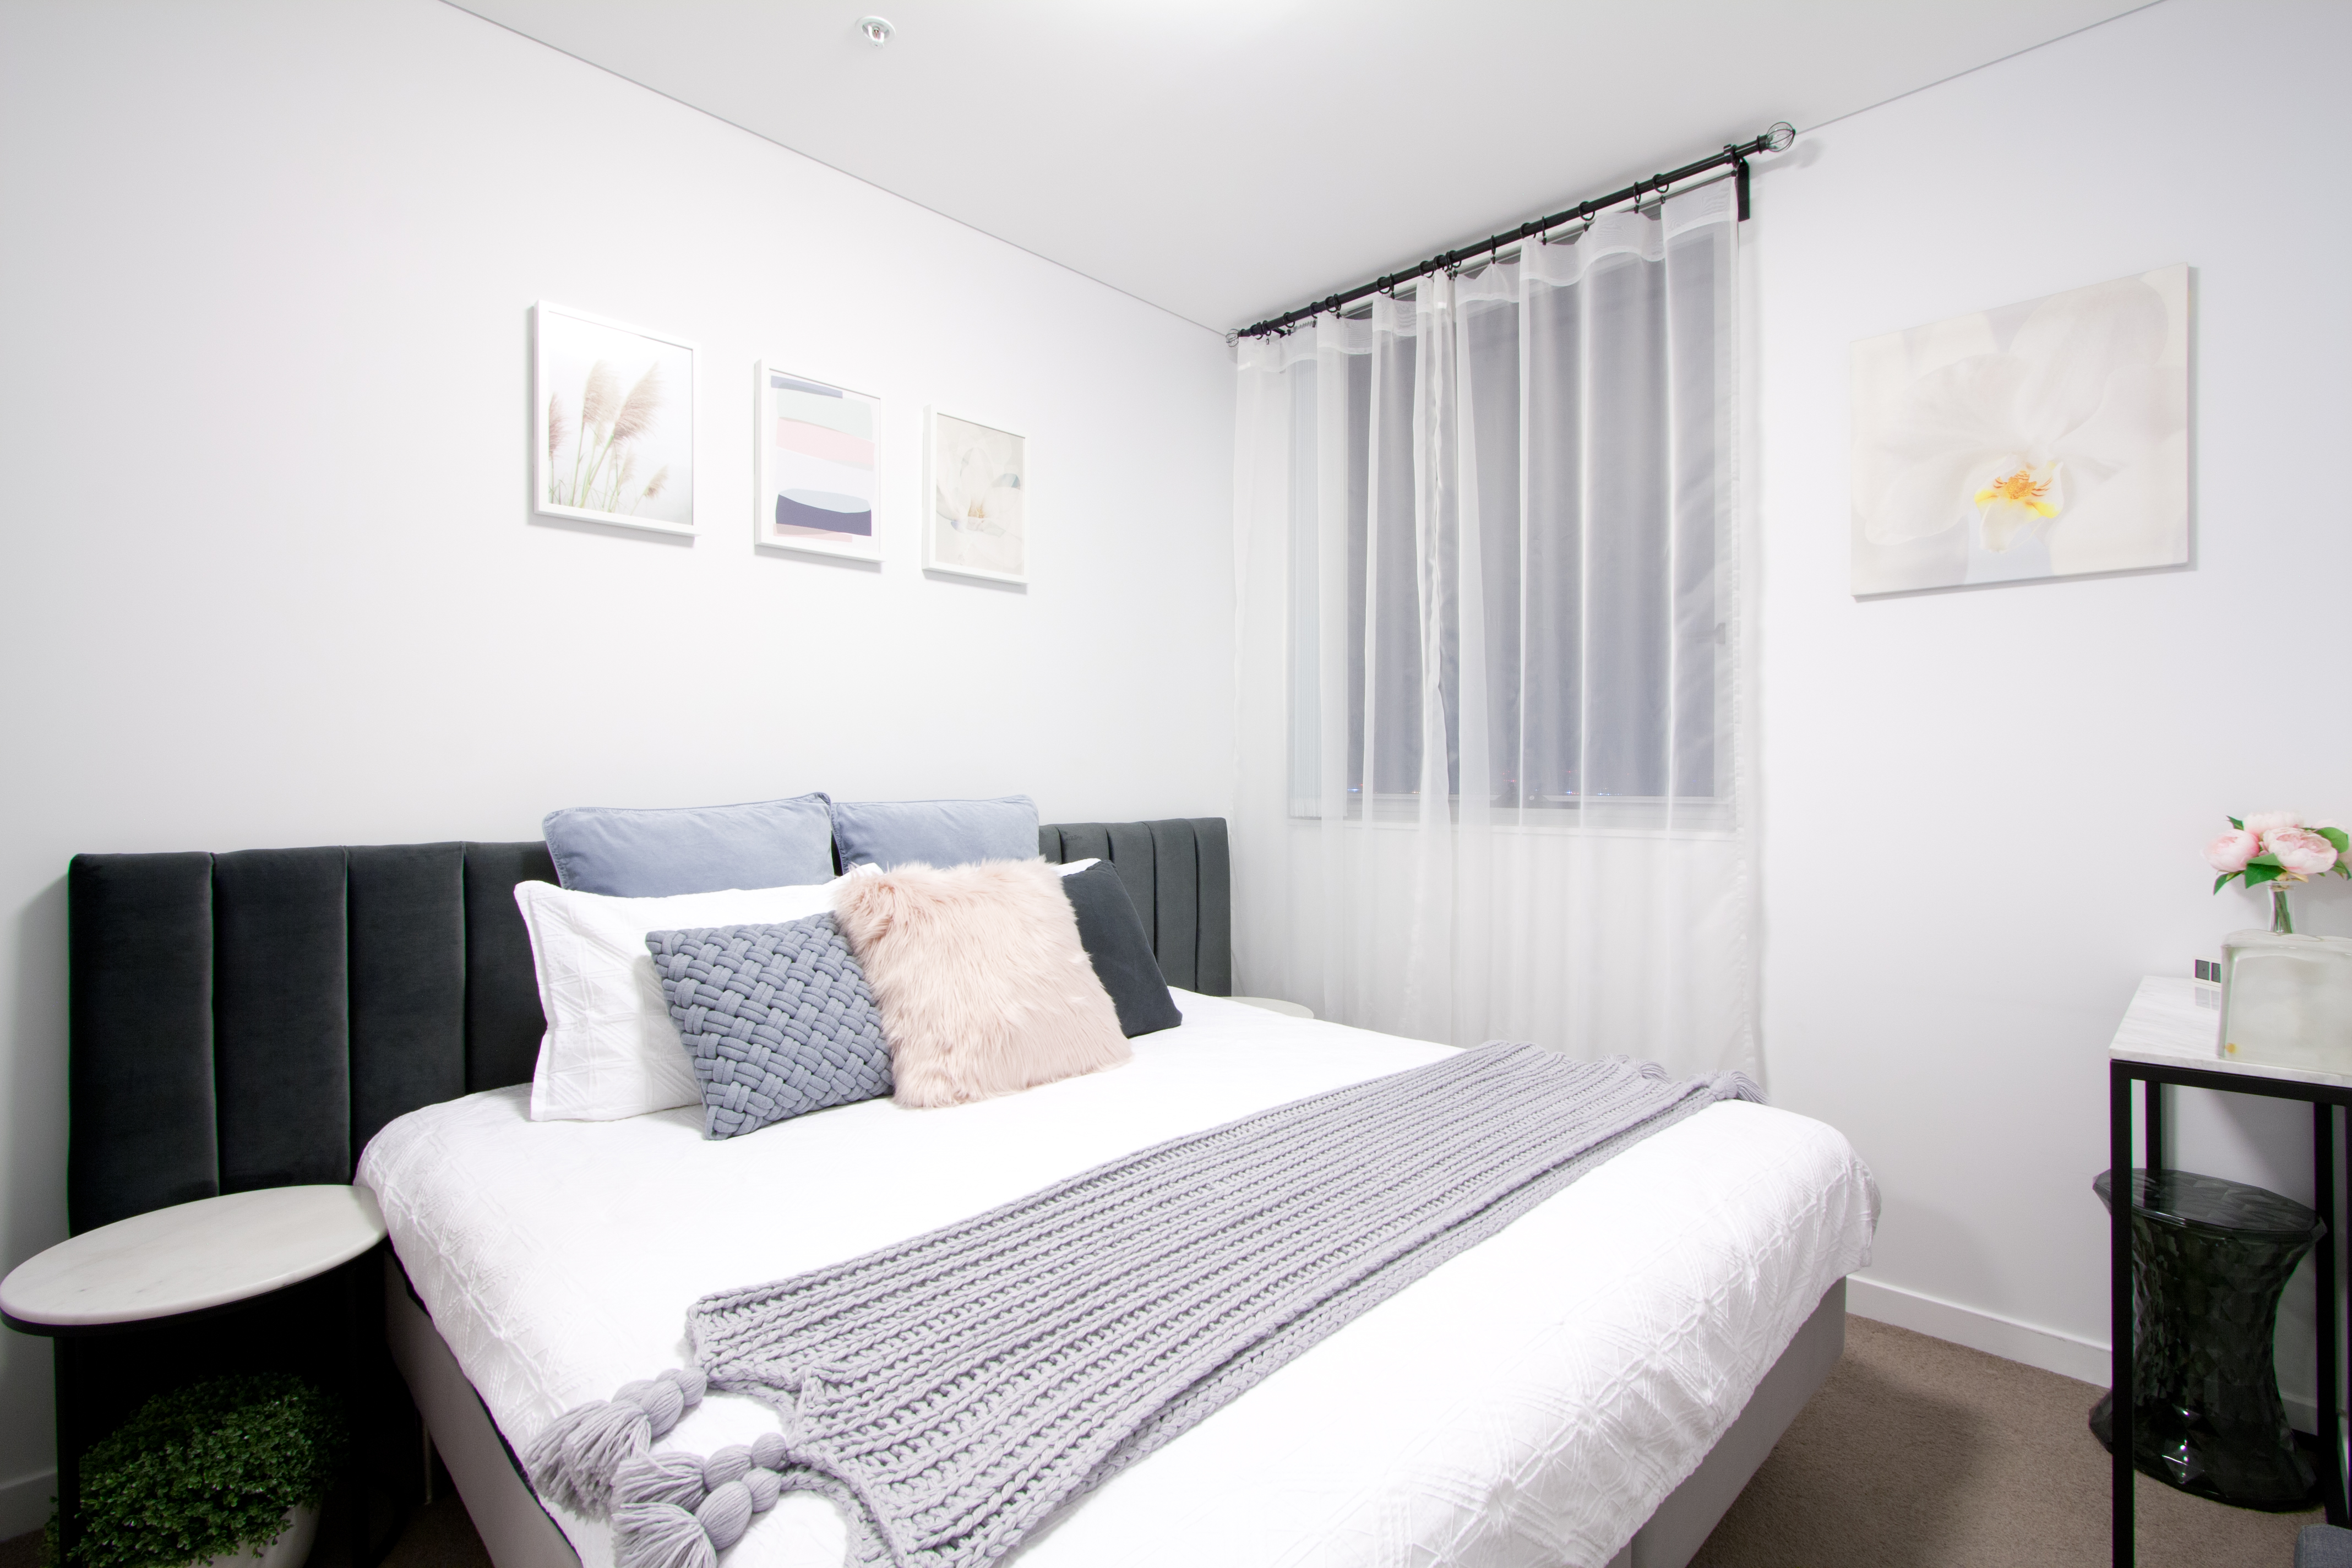 Guest Room - Night